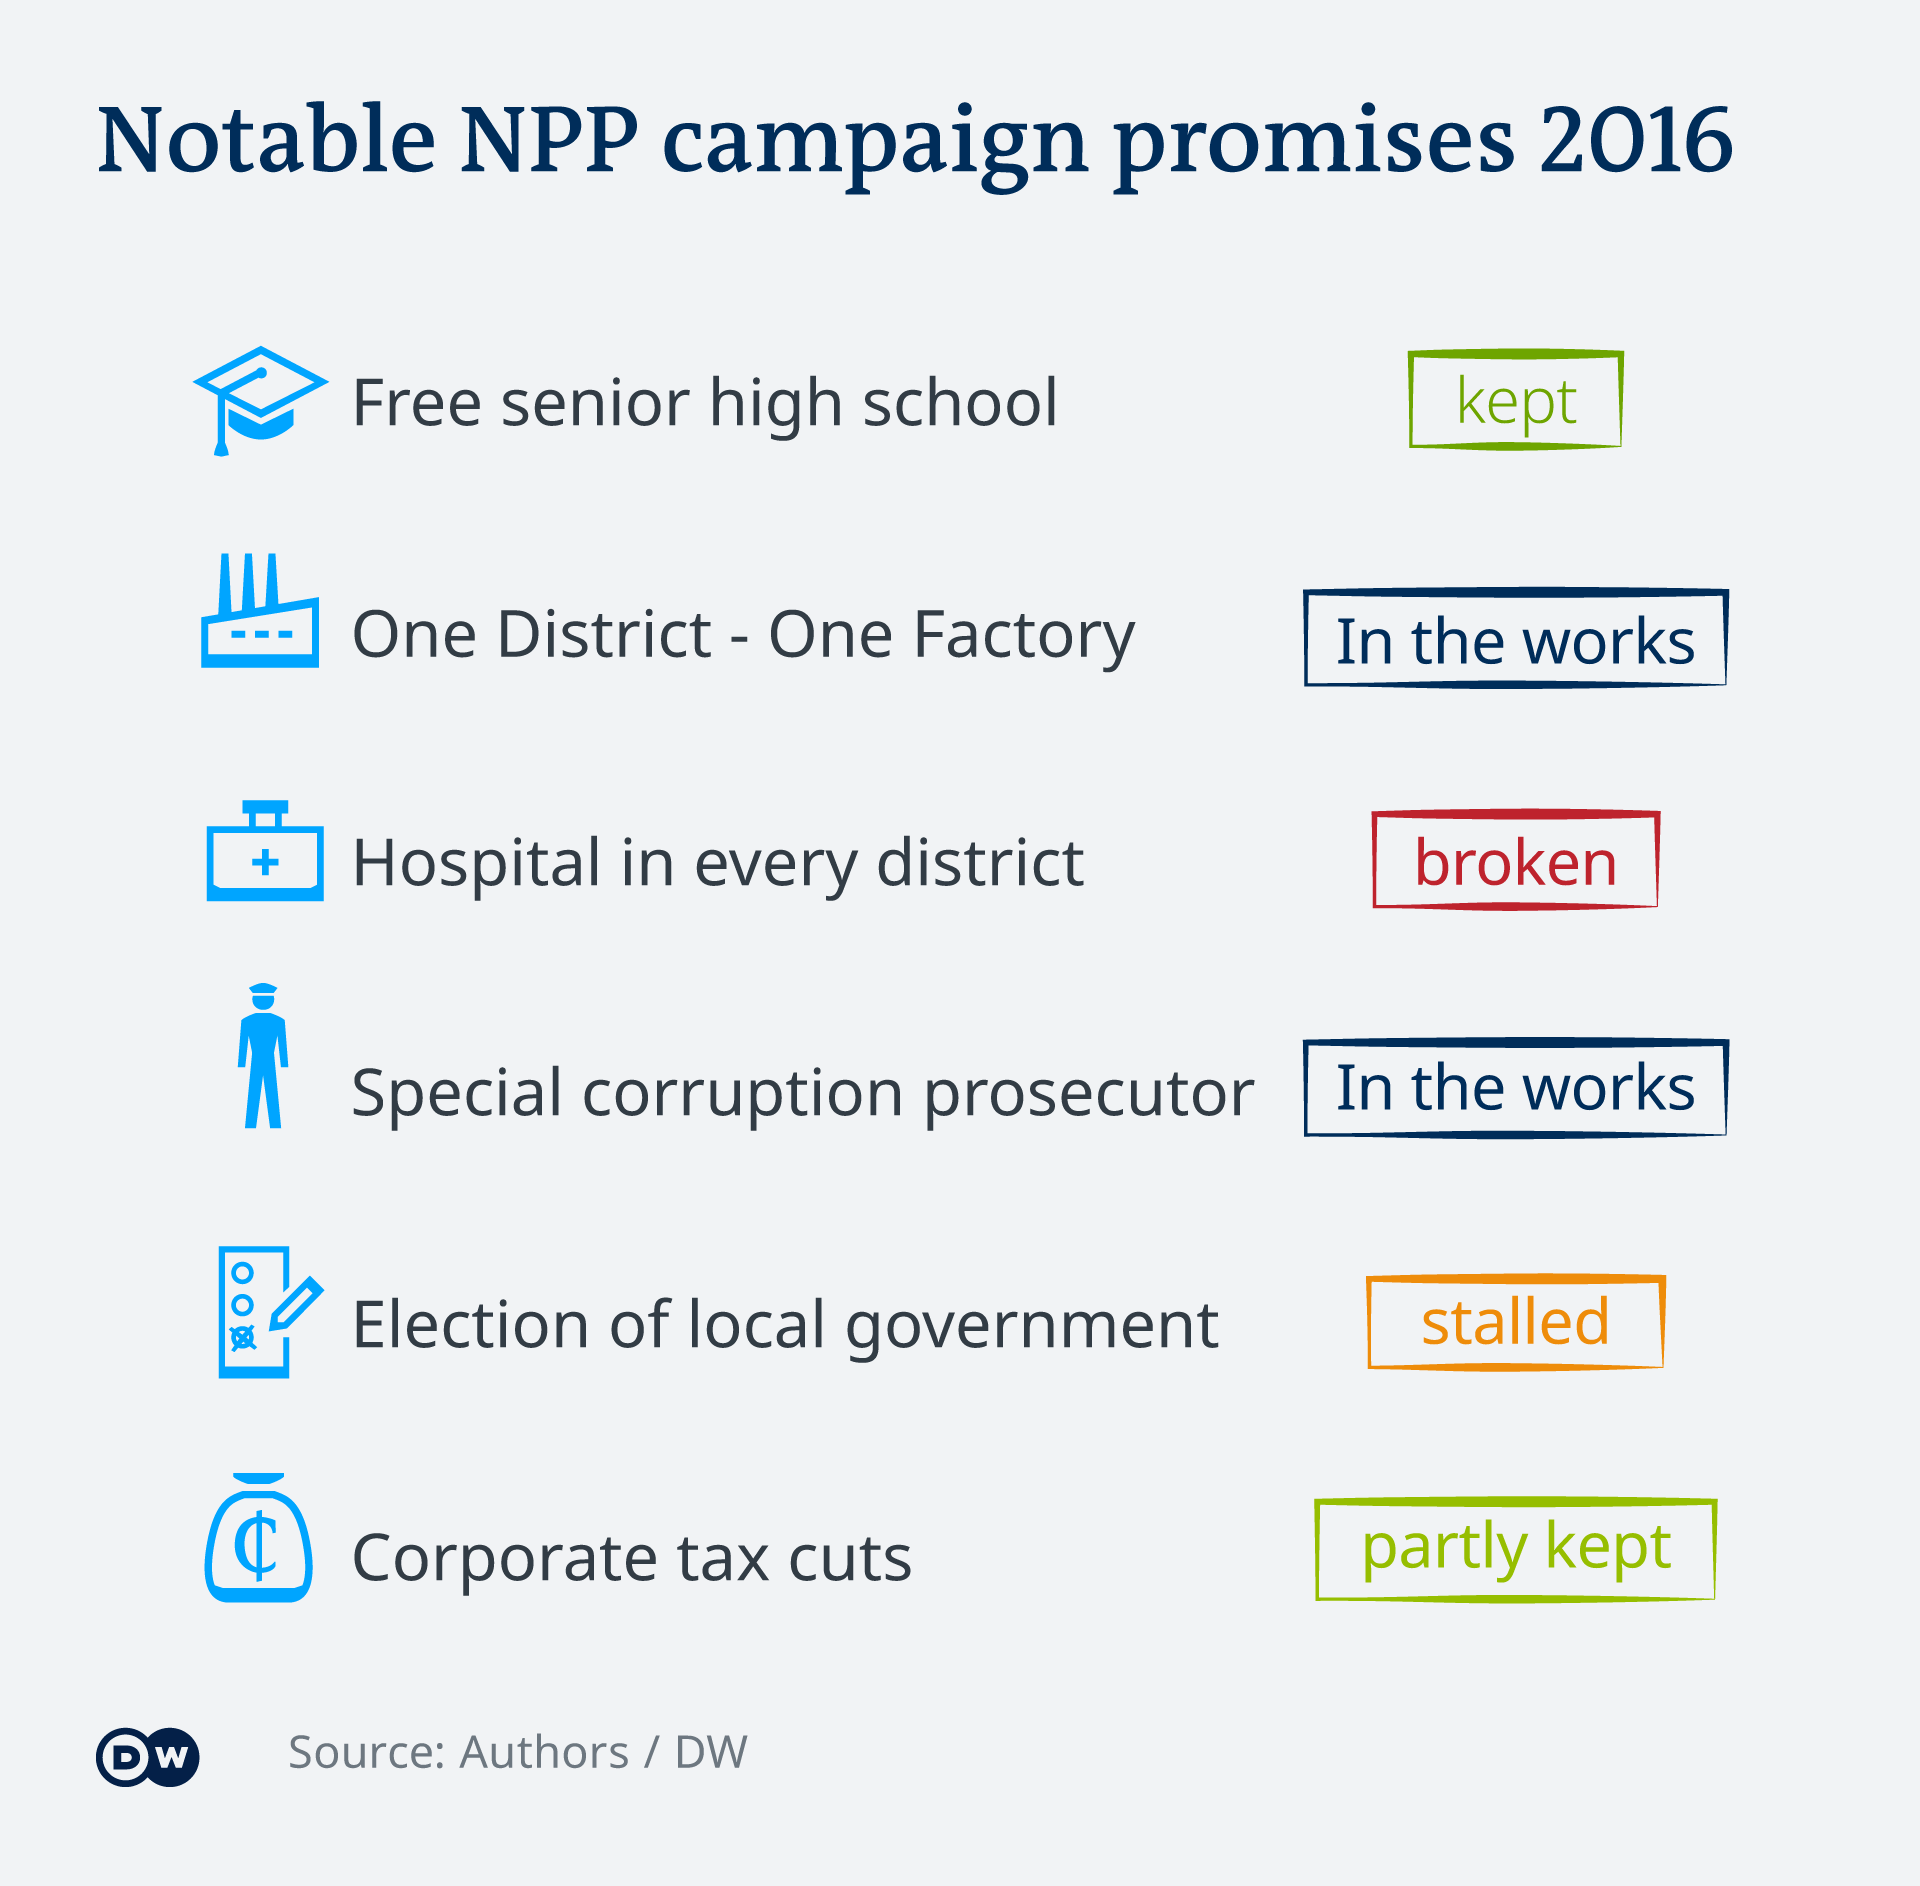 An infographic showing notable campaign promises made by the NPP